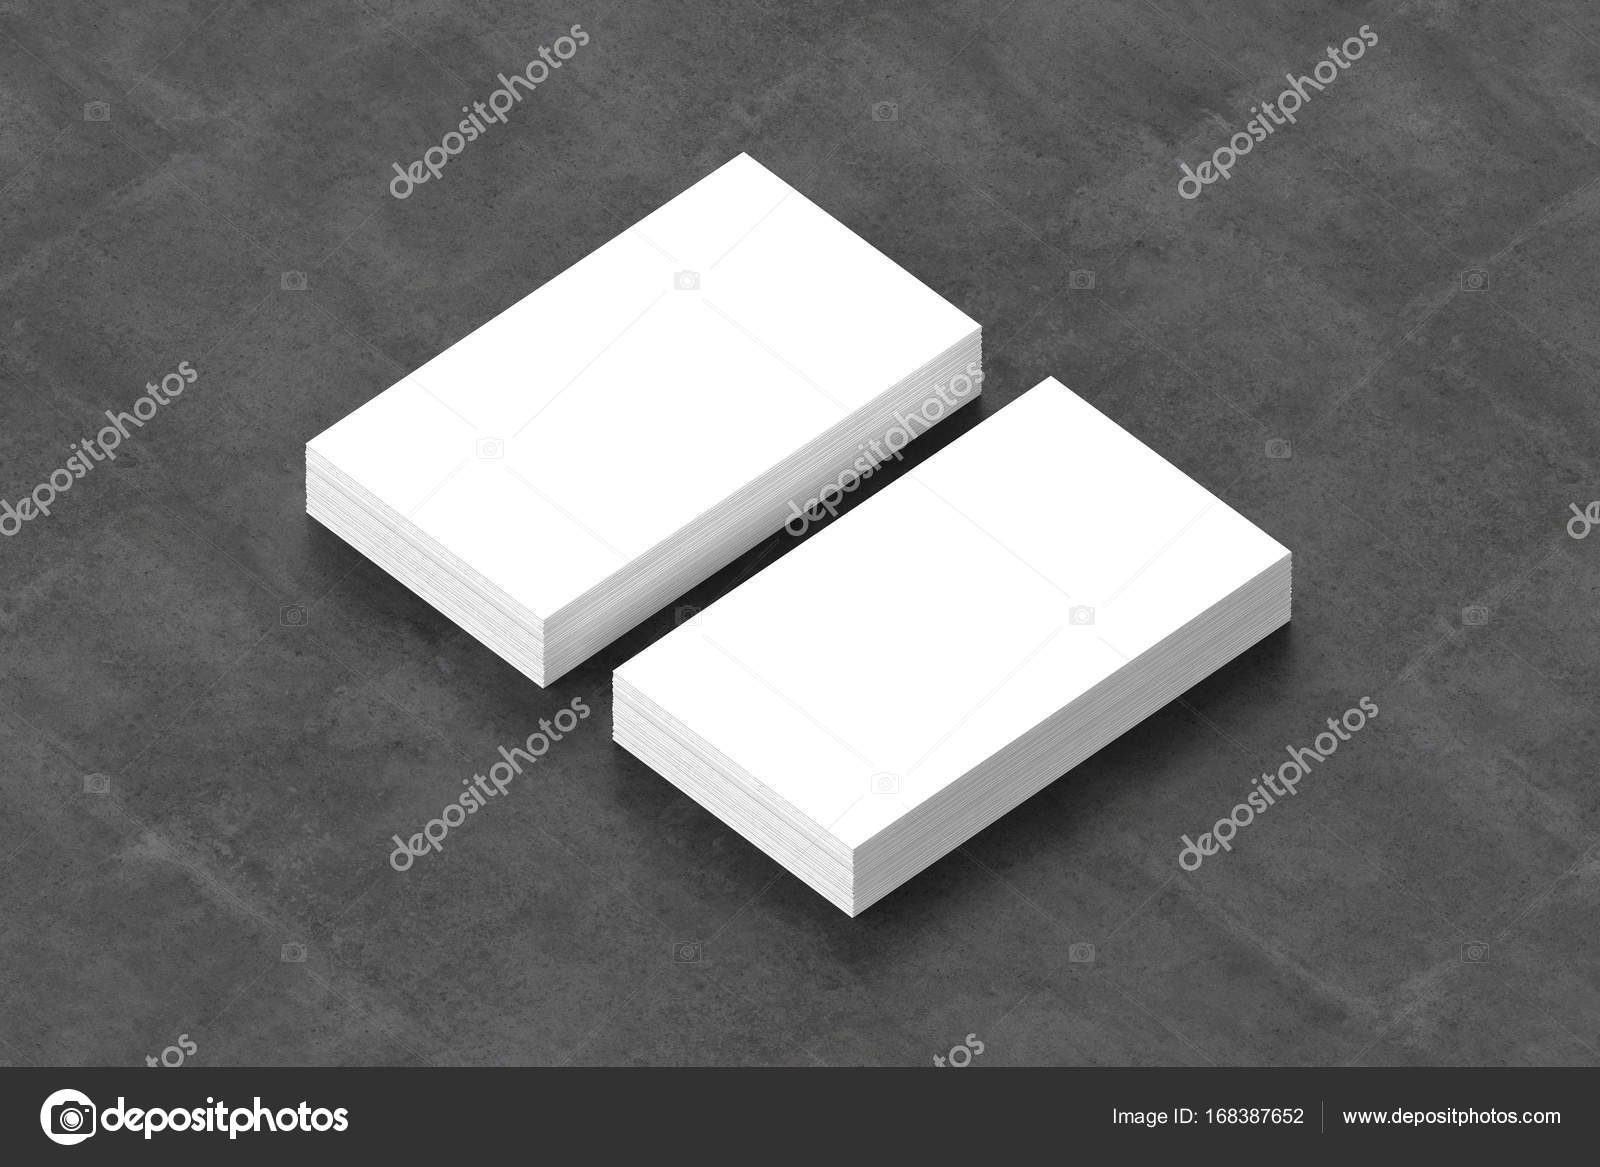 Business cards blank mockup template 3d illustration stock business cards blank mockup template 3d illustration photo by daliborzivotic reheart Image collections